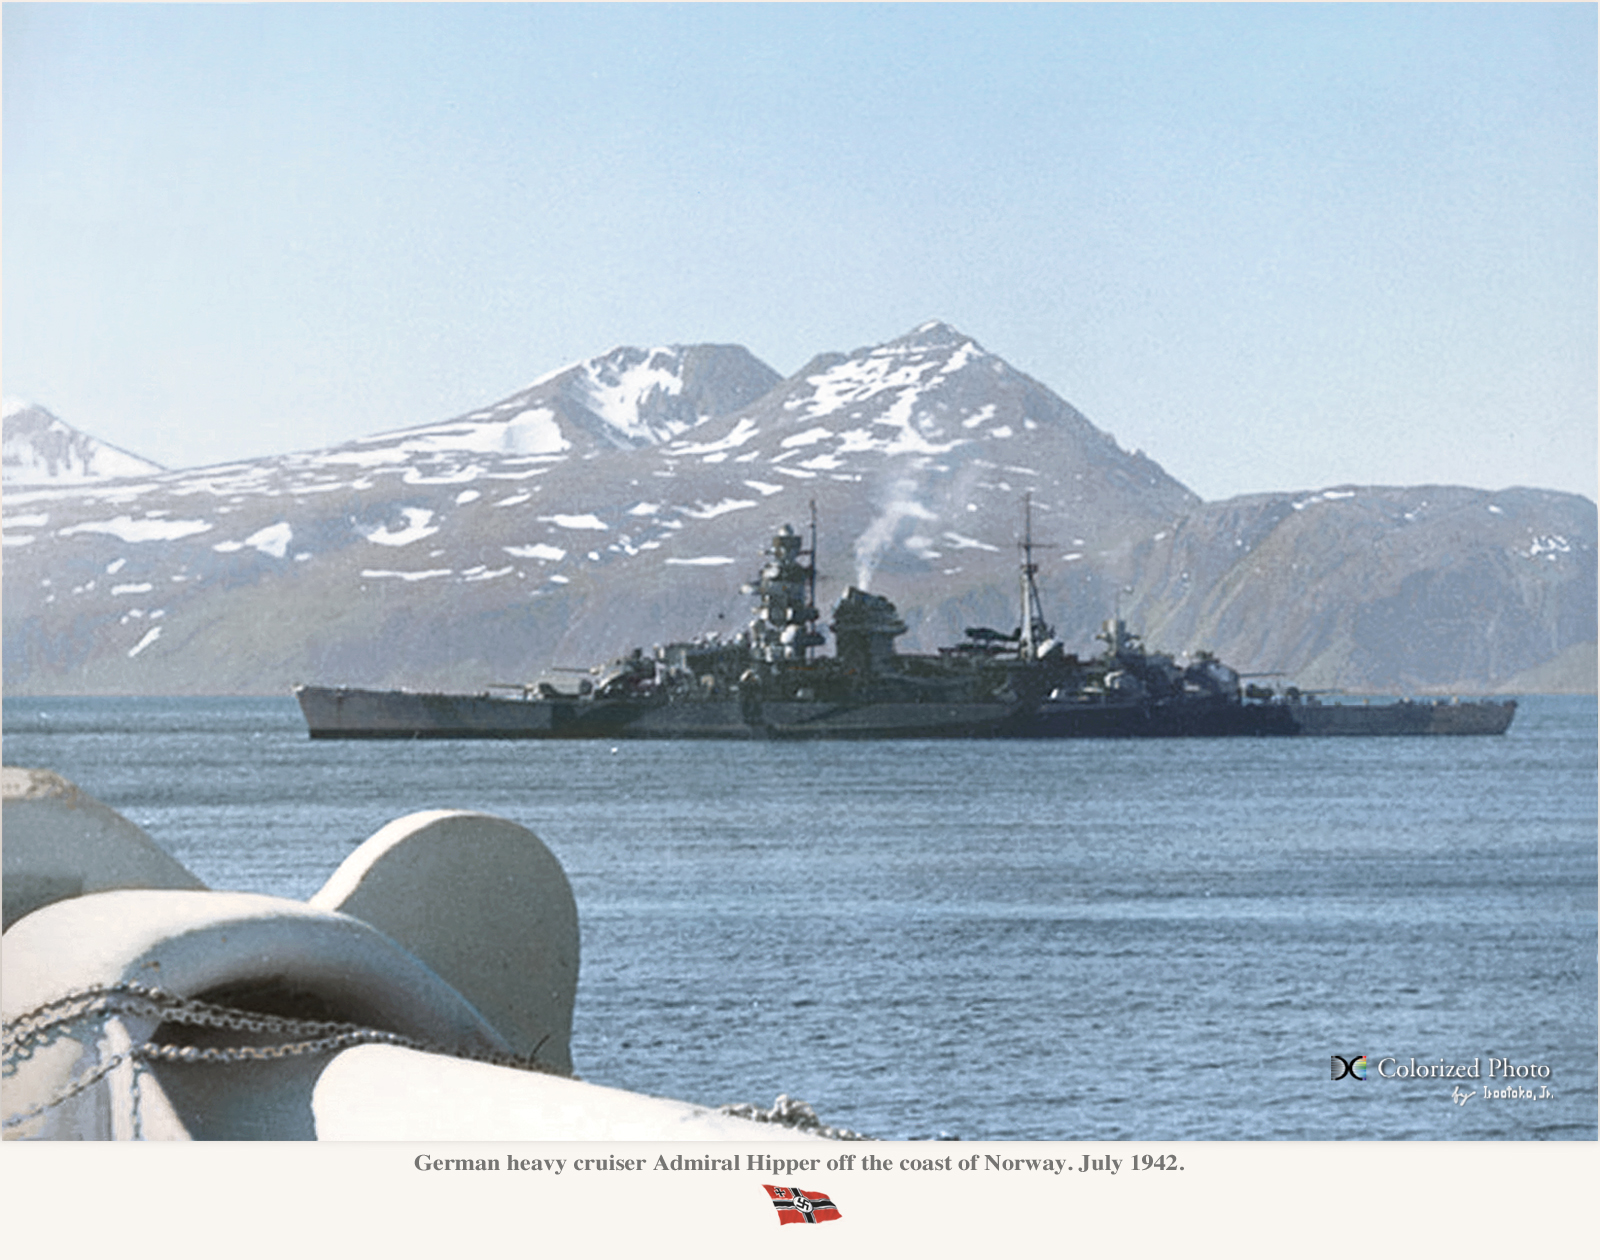 KMS Hipper in Norway, July 1942 - colorized by Irootoko jr